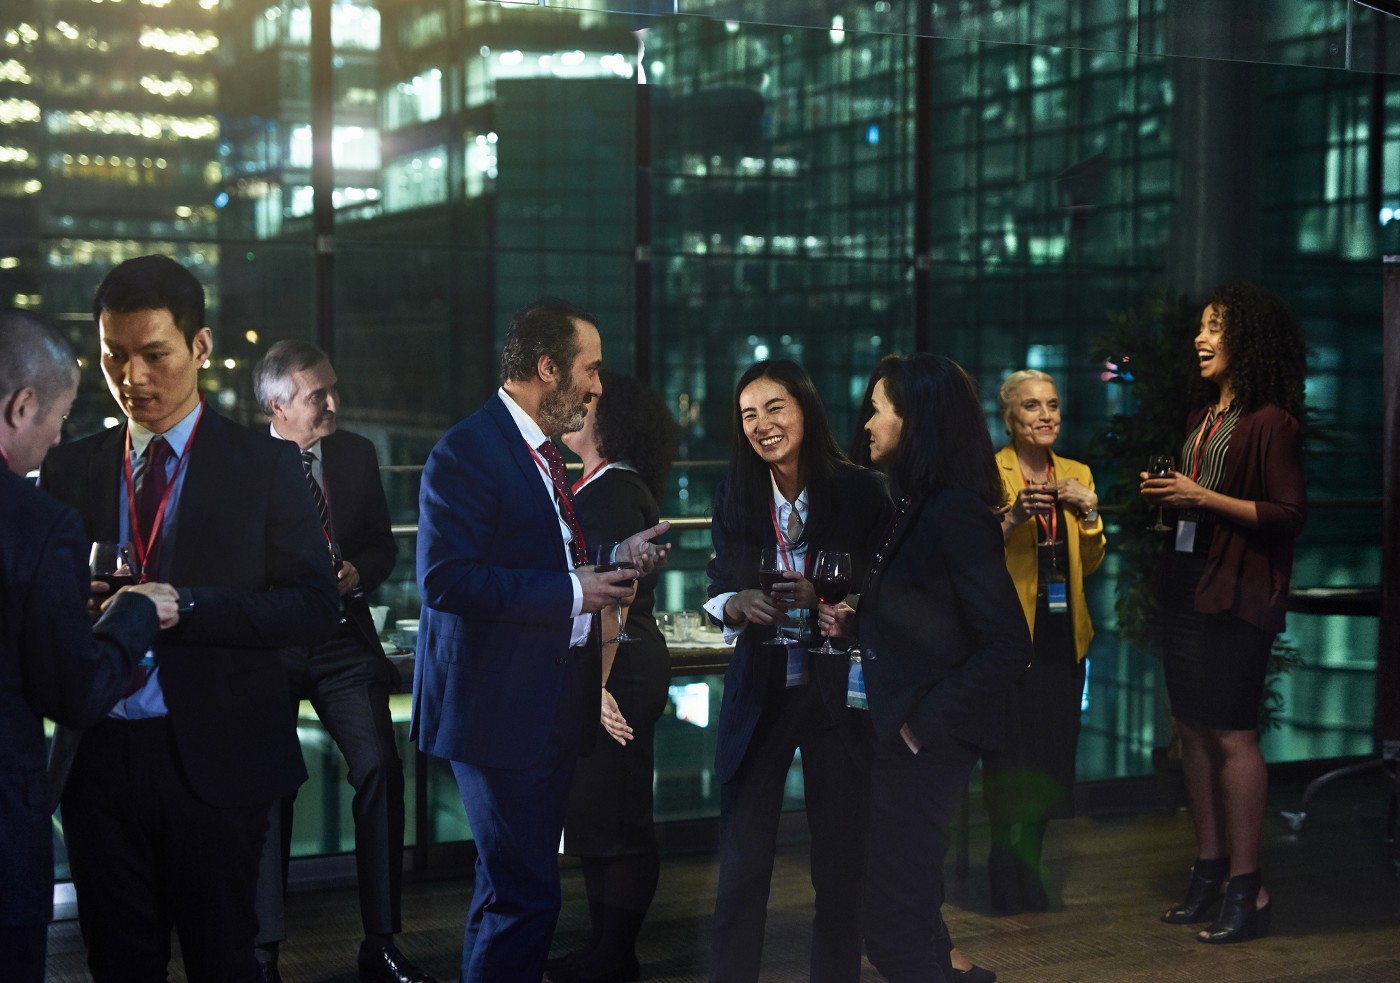 A photo of business people networking in an office building with glass windows at night.